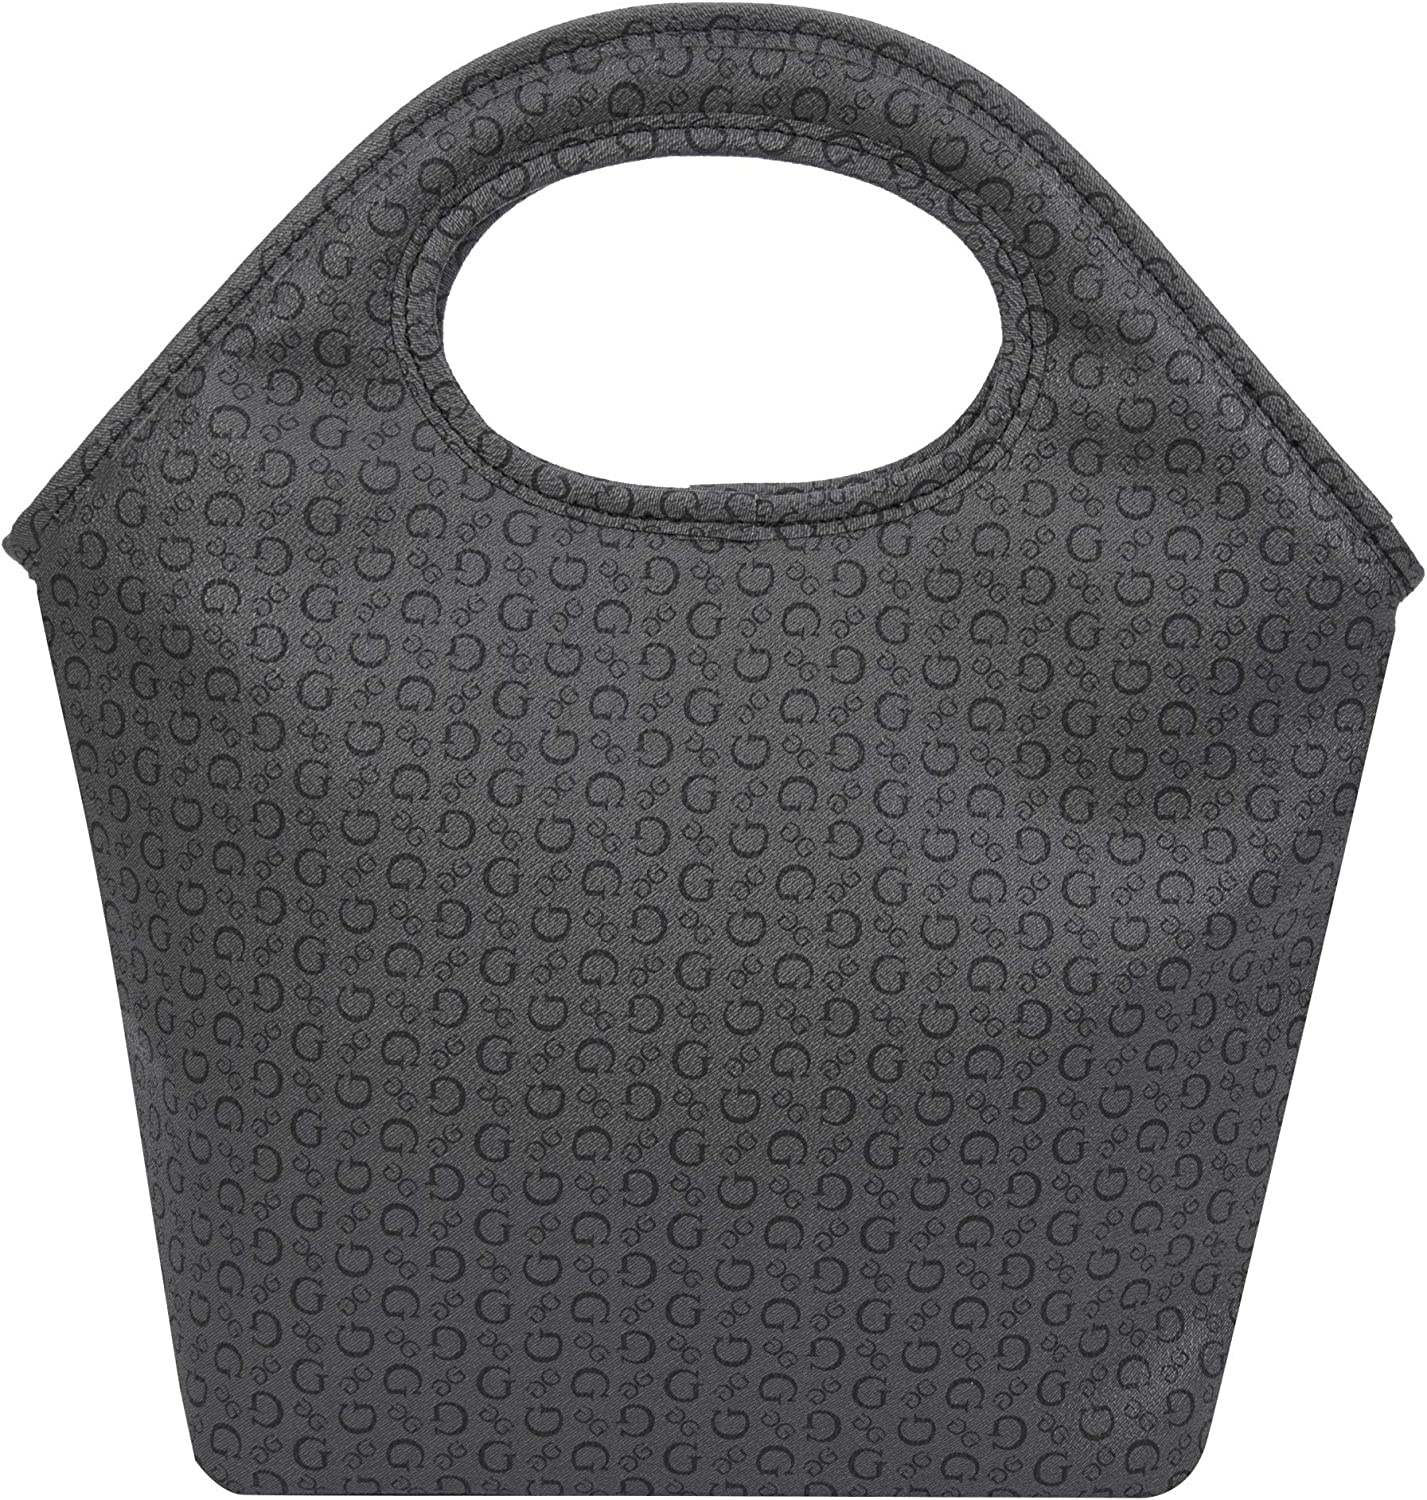 Guess Junction Coated PVC Insulated Lunch Tote, Charcoal